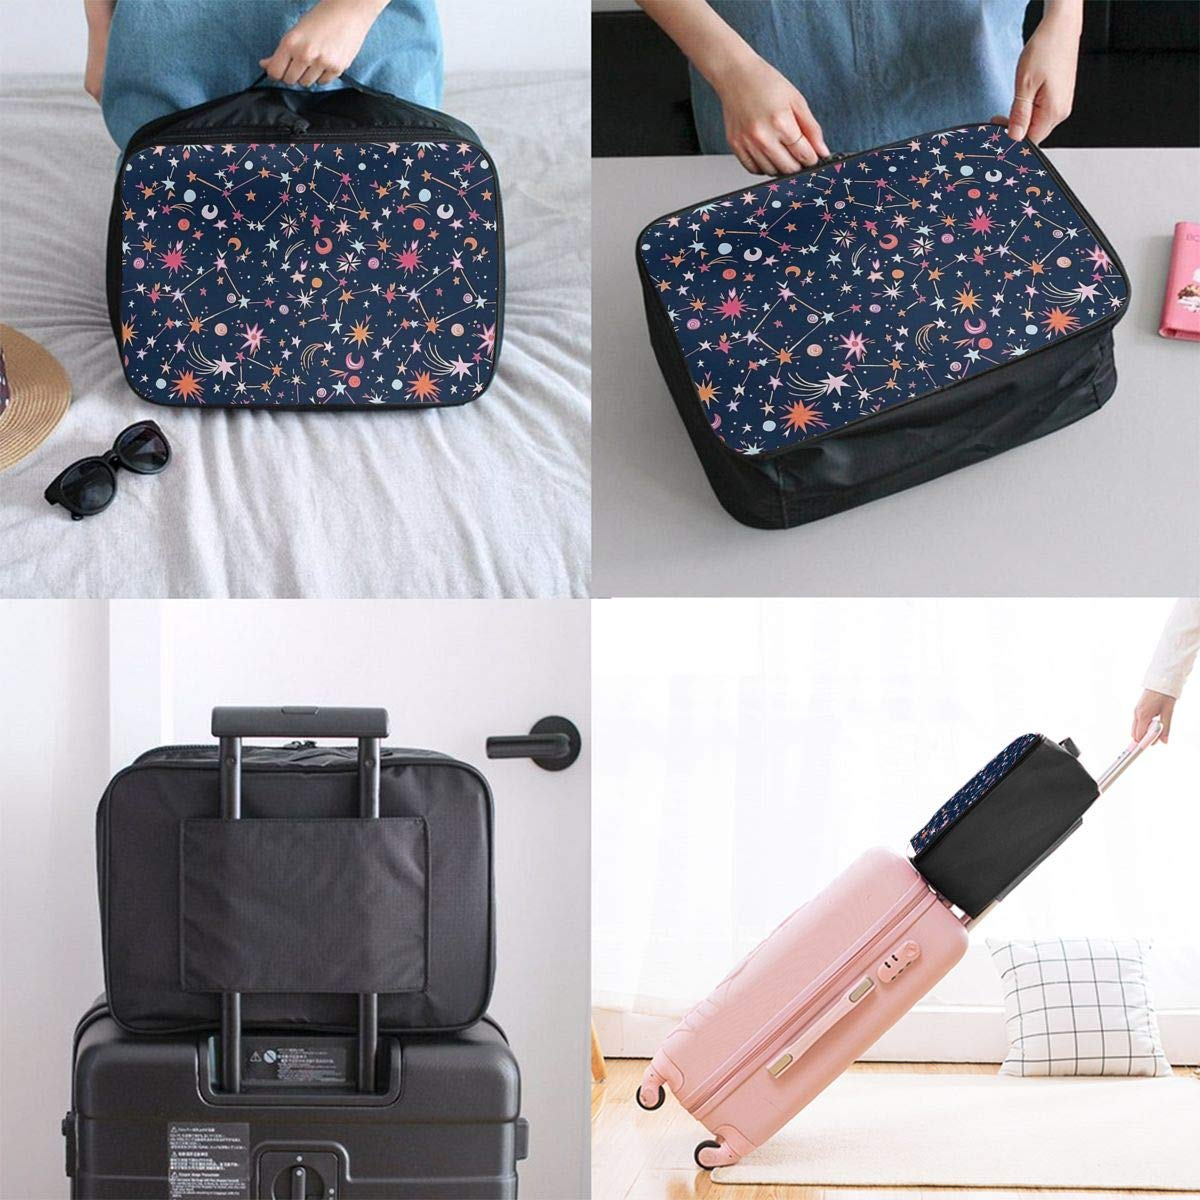 Cartoon Constellation In Navy Blue Travel Lightweight Waterproof Folding Storage Portable Luggage Duffle Tote Bag Large Capacity In Trolley Handle Bags 6x11x15 Inch